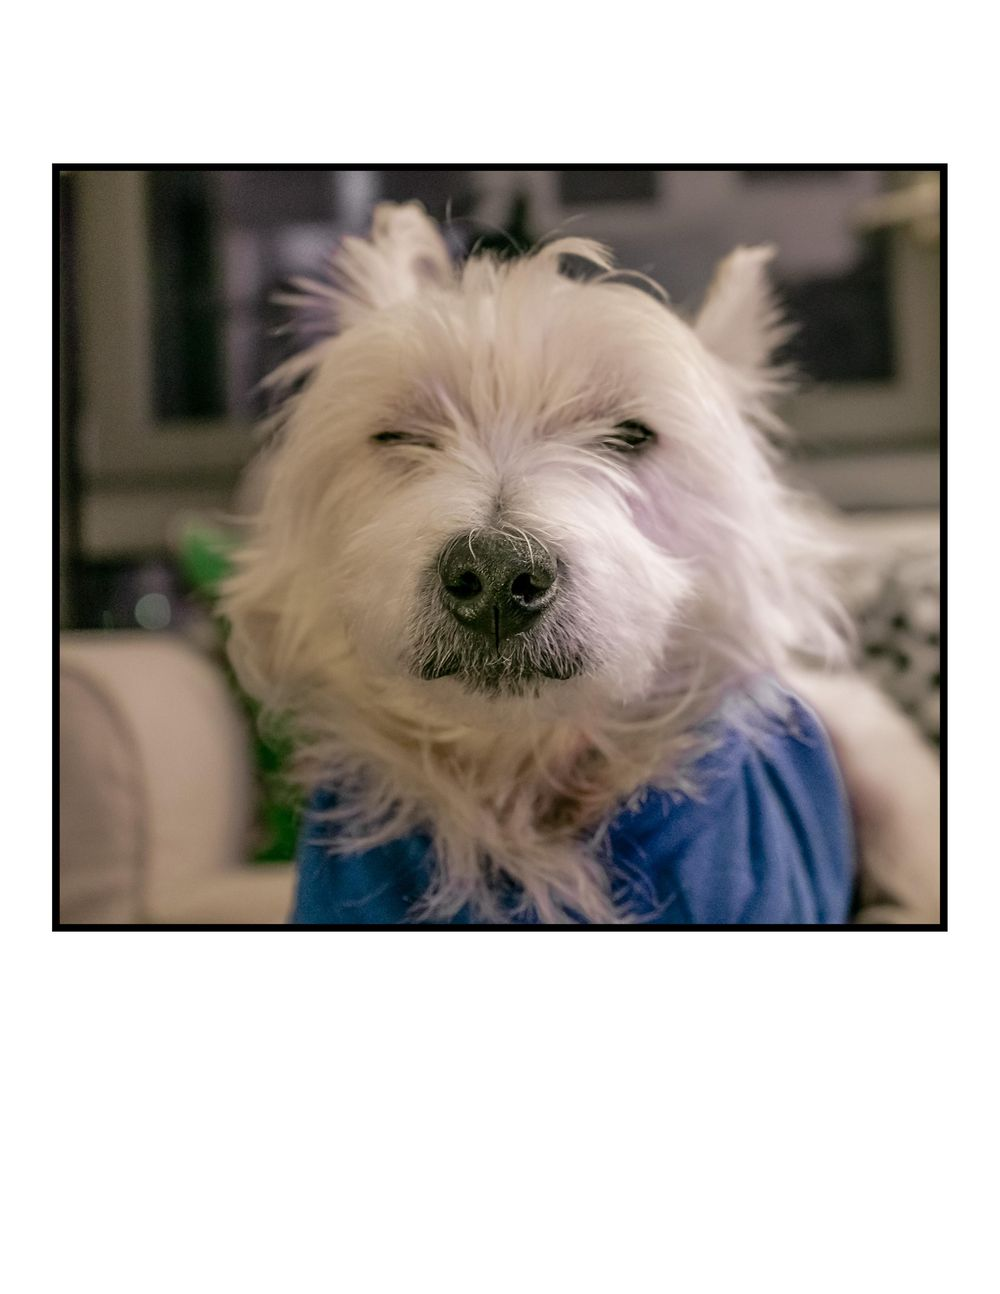 My dog Bastian, is really a grumpy old man. - image 1 - student project